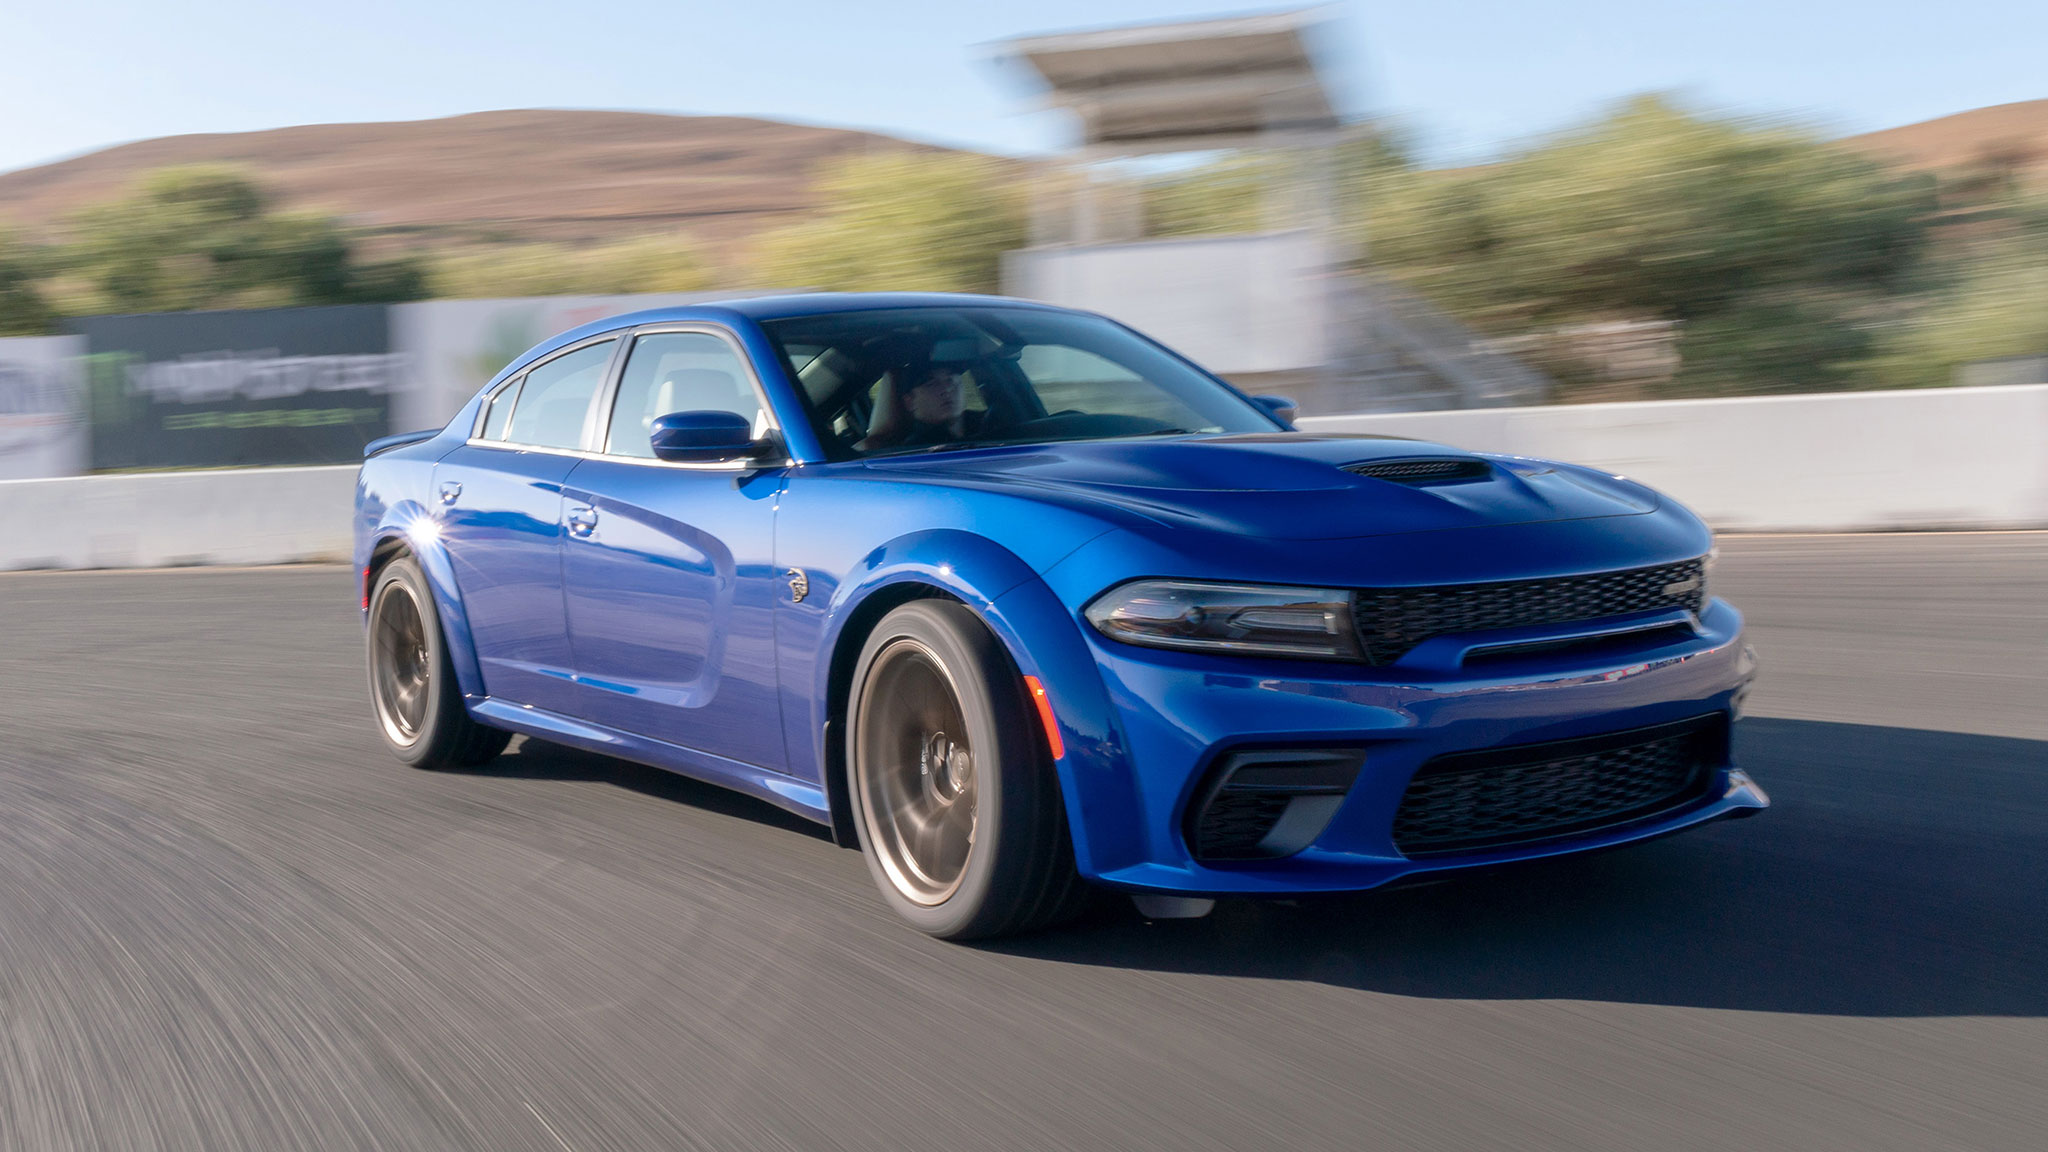 2020 Dodge Charger Srt Hellcat Widebody Review Wide The Lightning